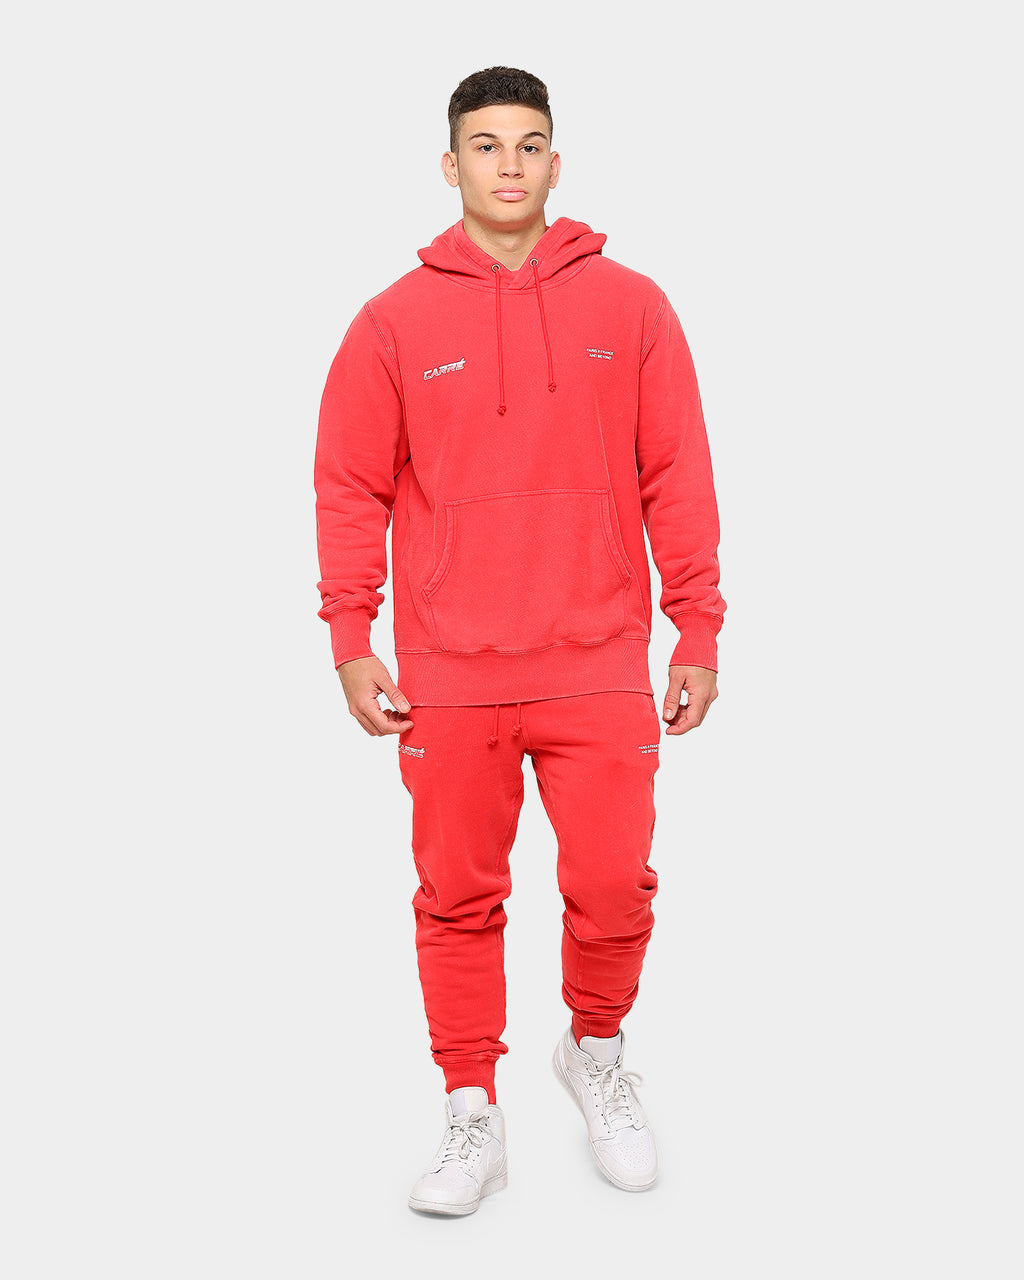 Carré Men's Colorant Classique Hoodie Red